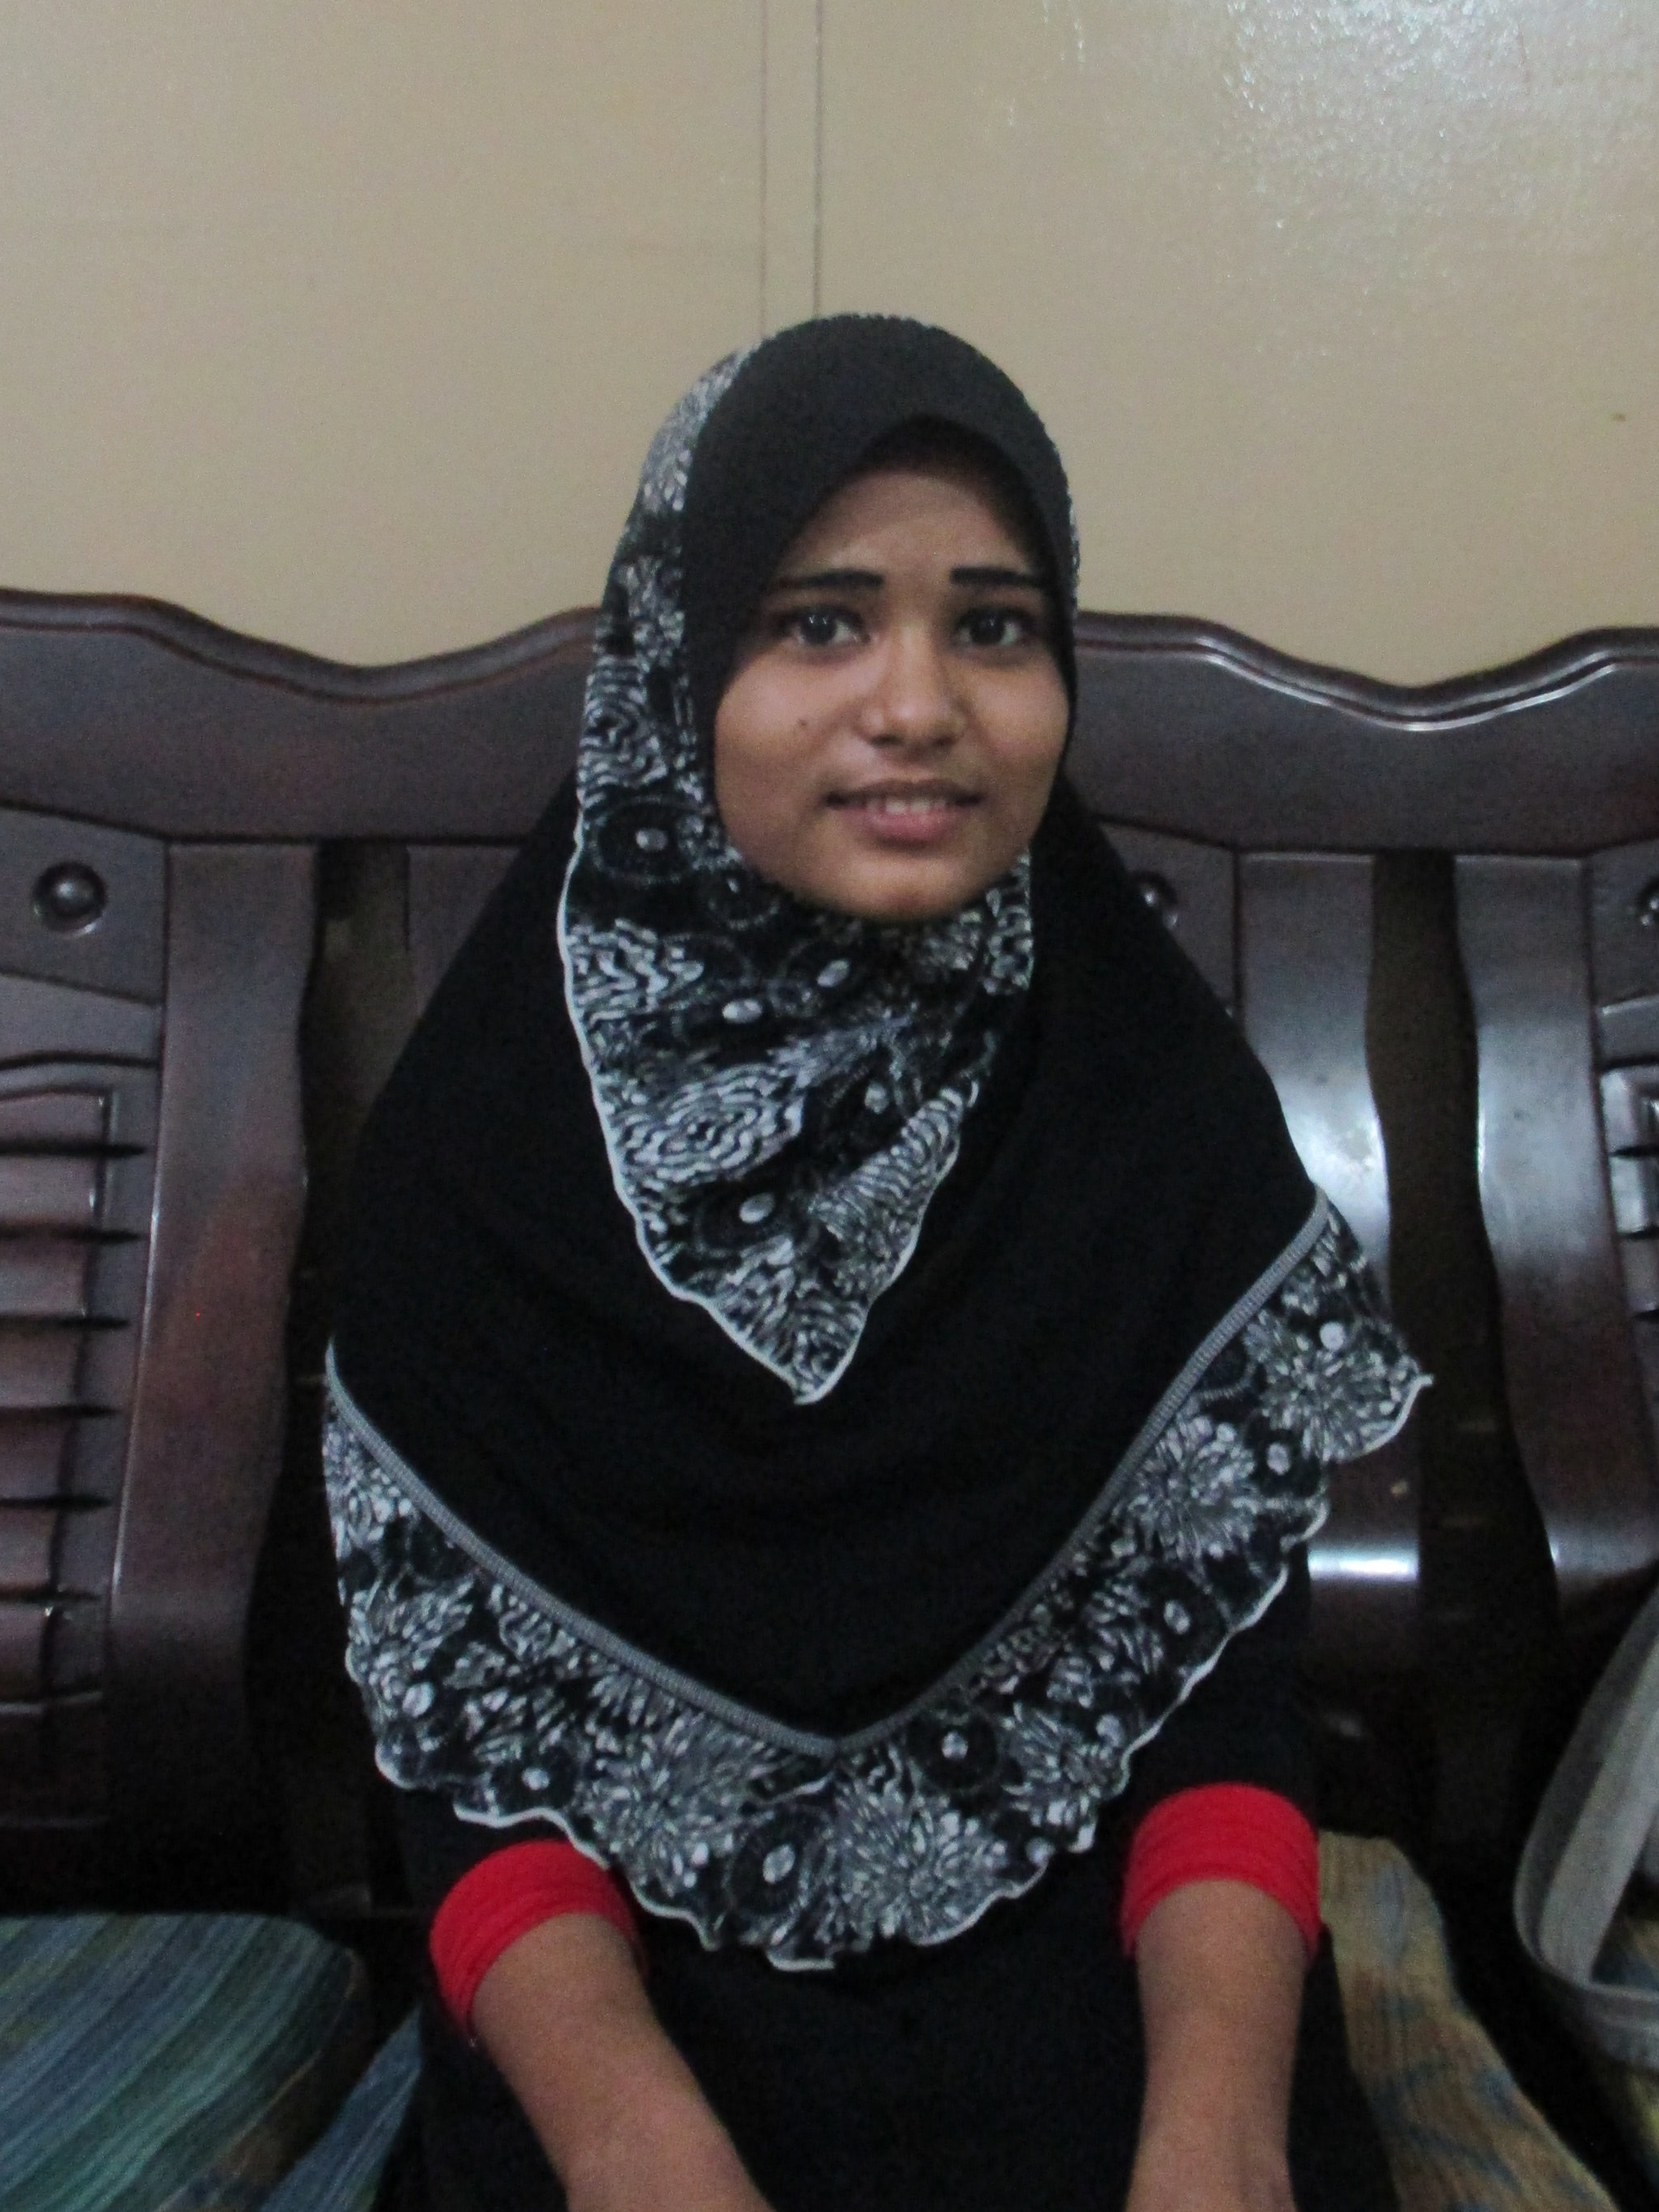 In May 2015, thousands of Rohingya along with Bangladeshi migrants and asylum seekers were abandoned at sea. Twelve-year-old Alinisa* –along with many others –had to swim for several hours before being saved by fishermen.